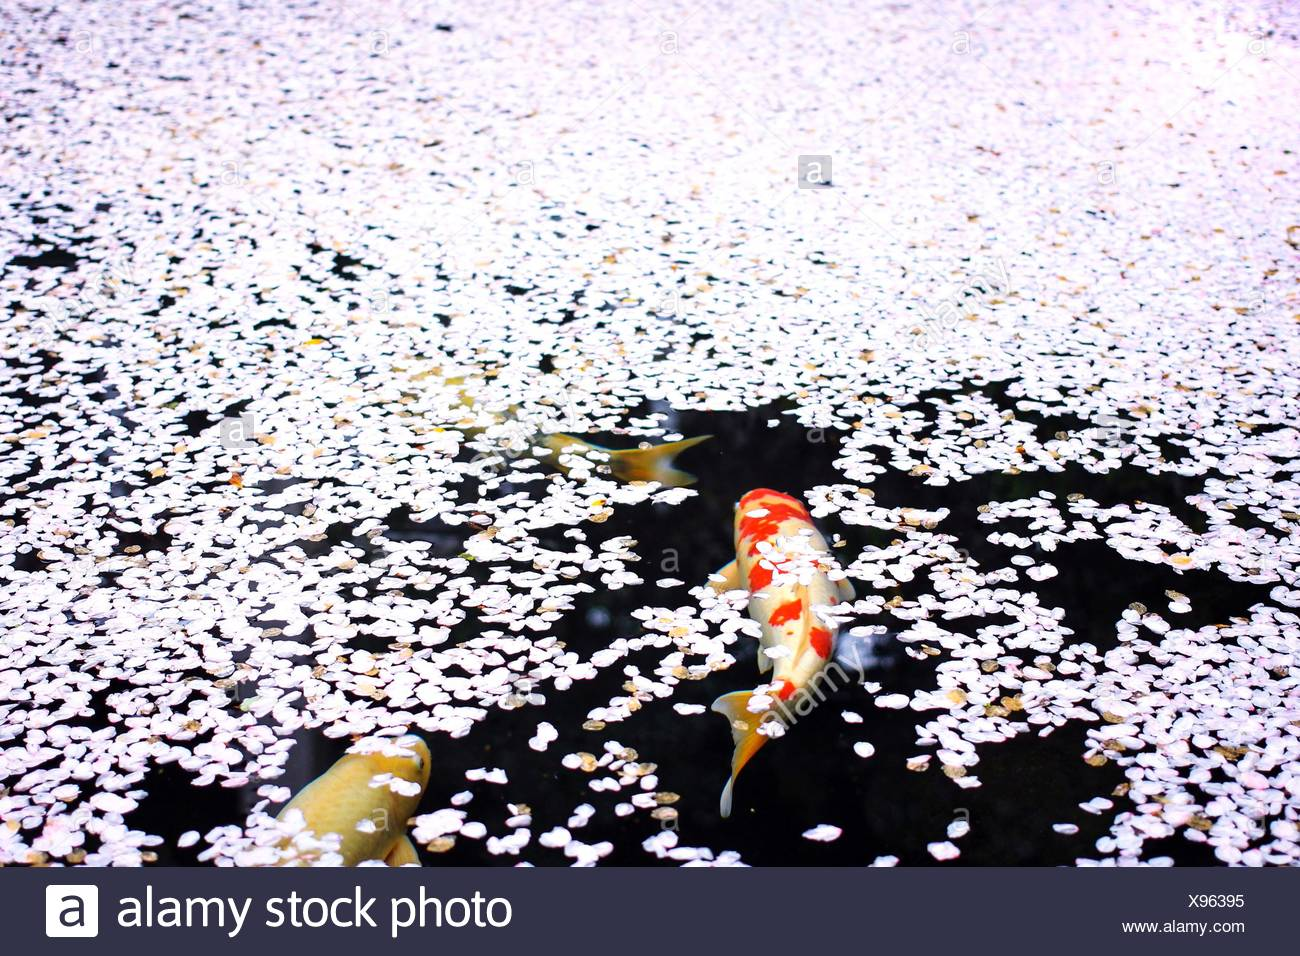 High Angle View Of Koi Fish In Pond - Stock Image